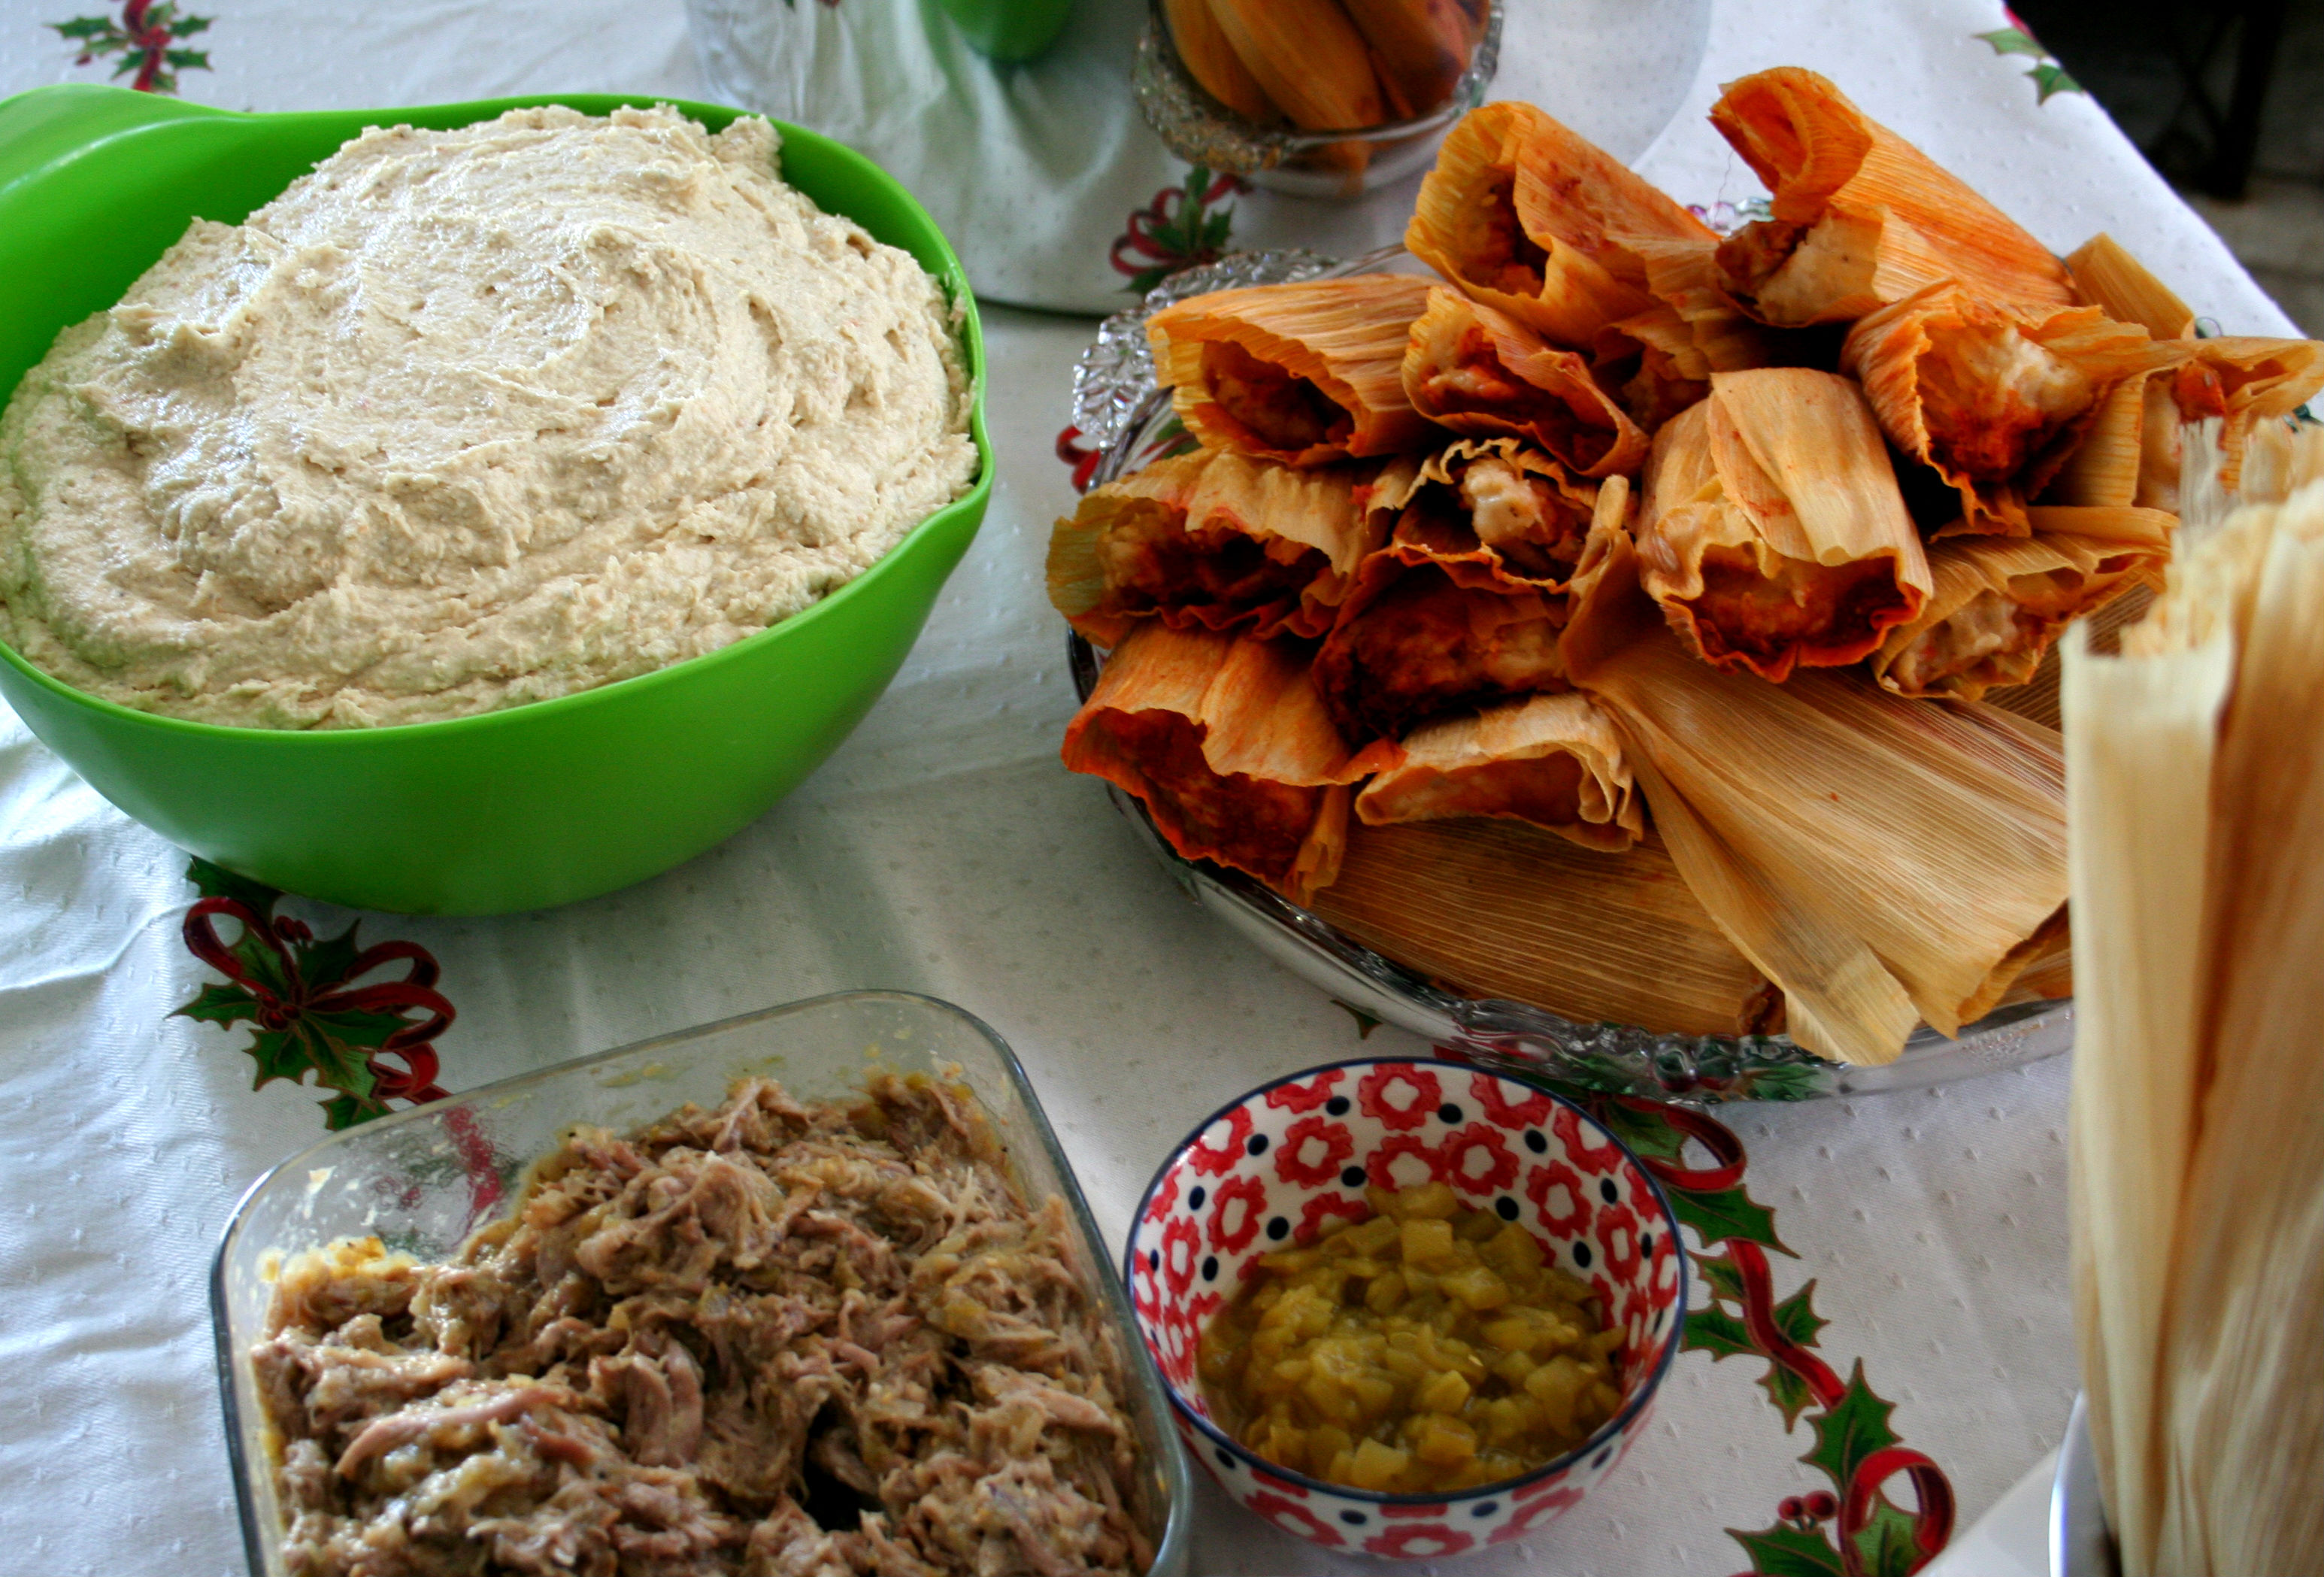 Tamale Components